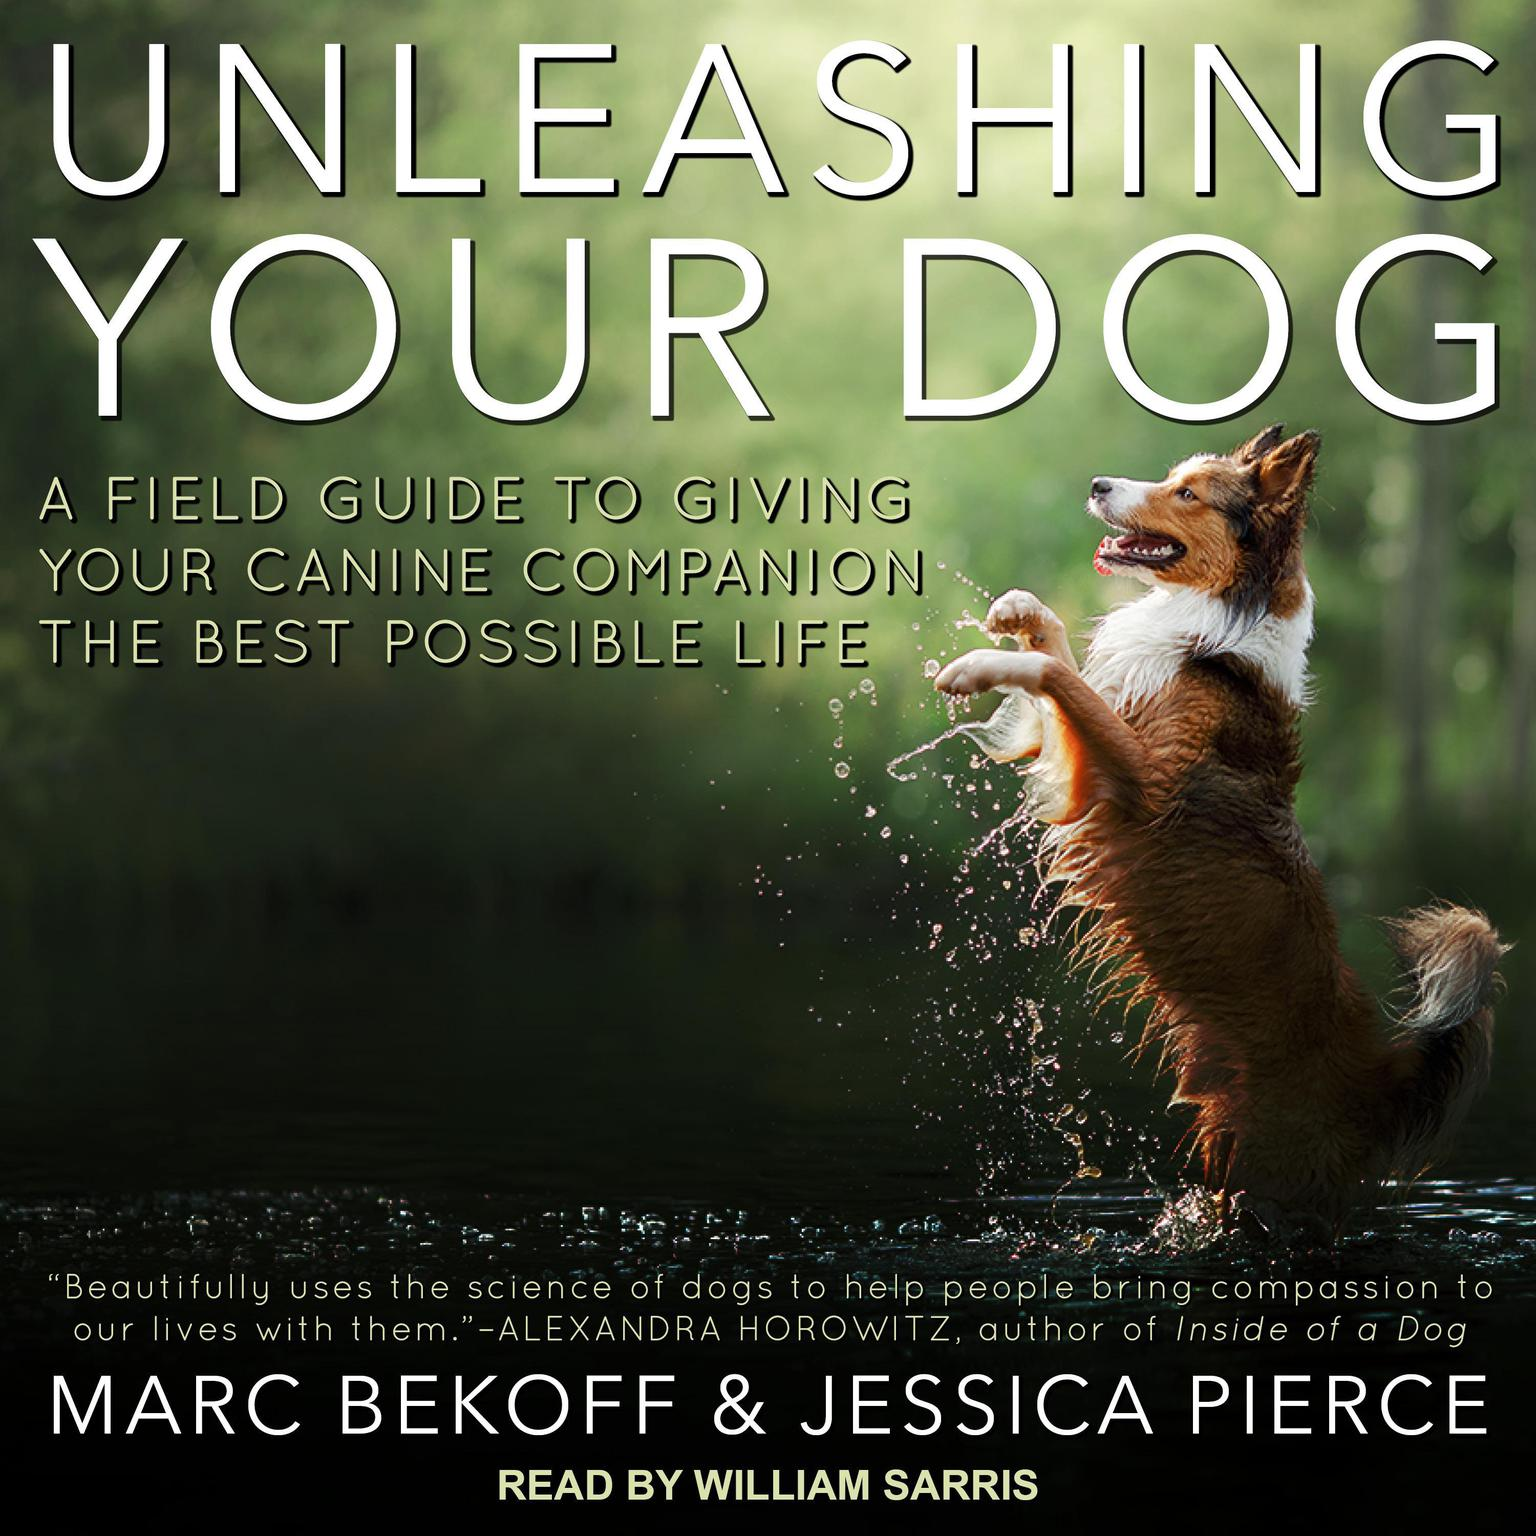 Printable Unleashing Your Dog: A Field Guide to Giving Your Canine Companion the Best Life Possible Audiobook Cover Art